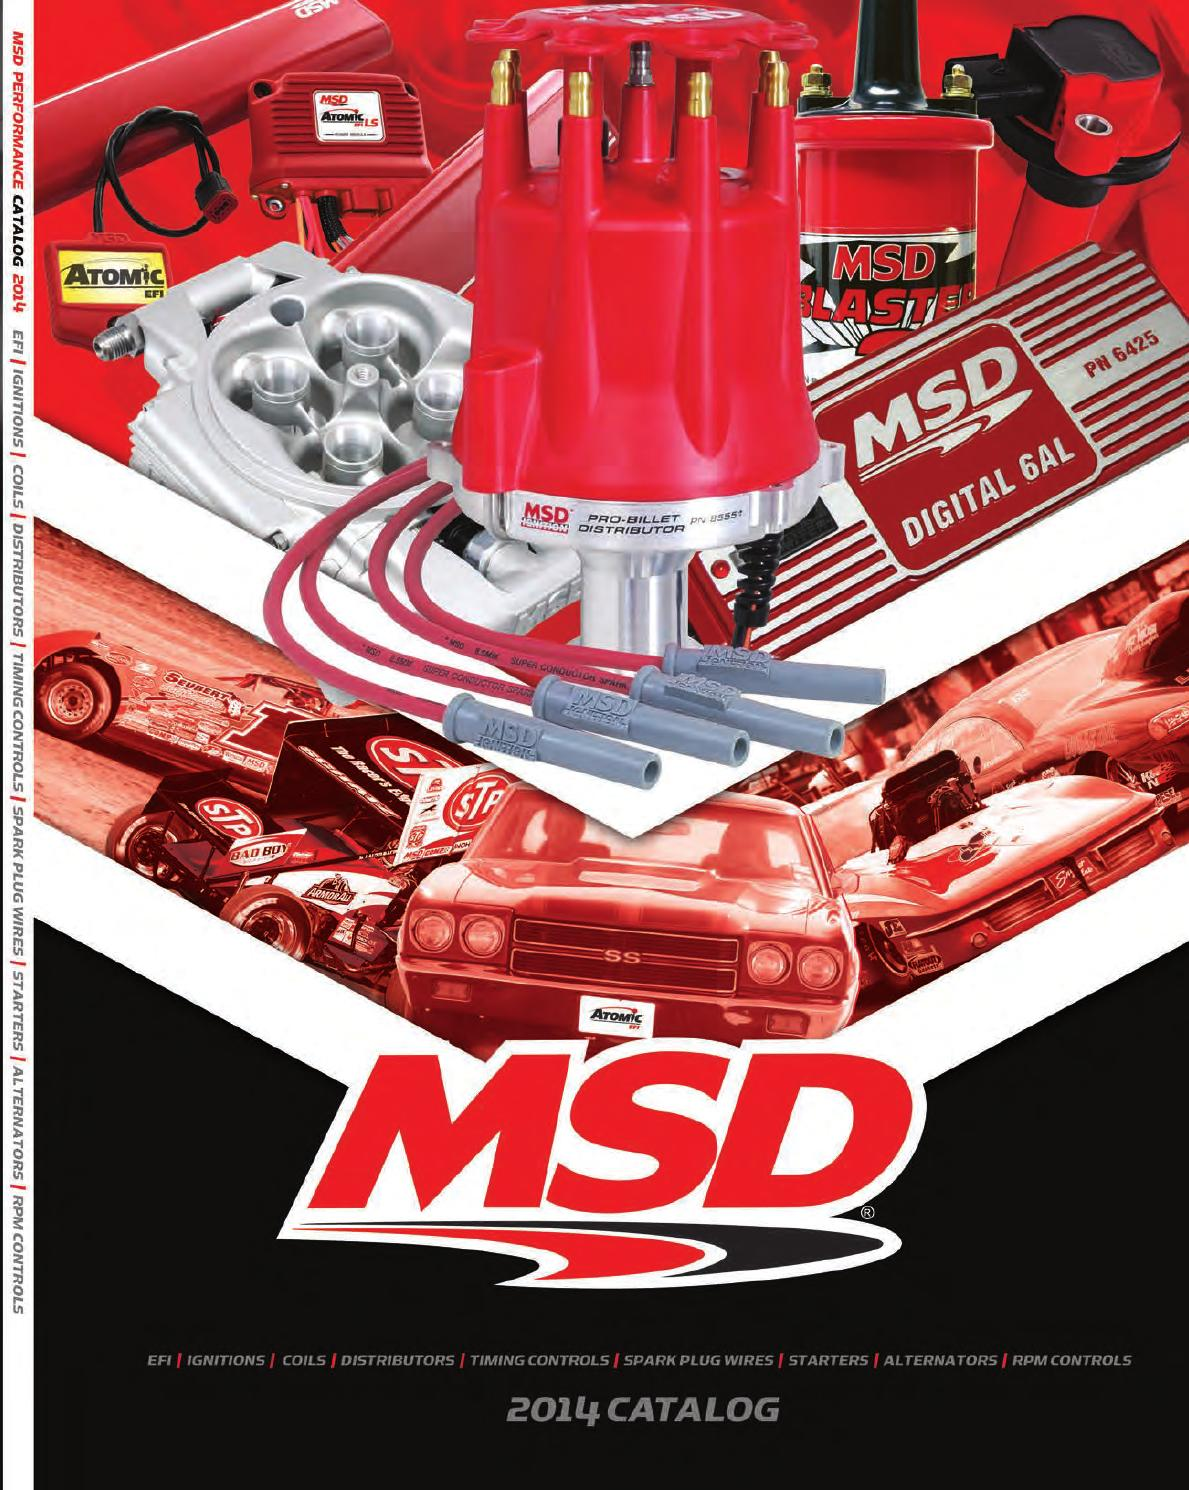 msd 8982 wiring diagram wiring diagram and schematic msd 7al 2 plus to distributor crank trigger timing control index of images